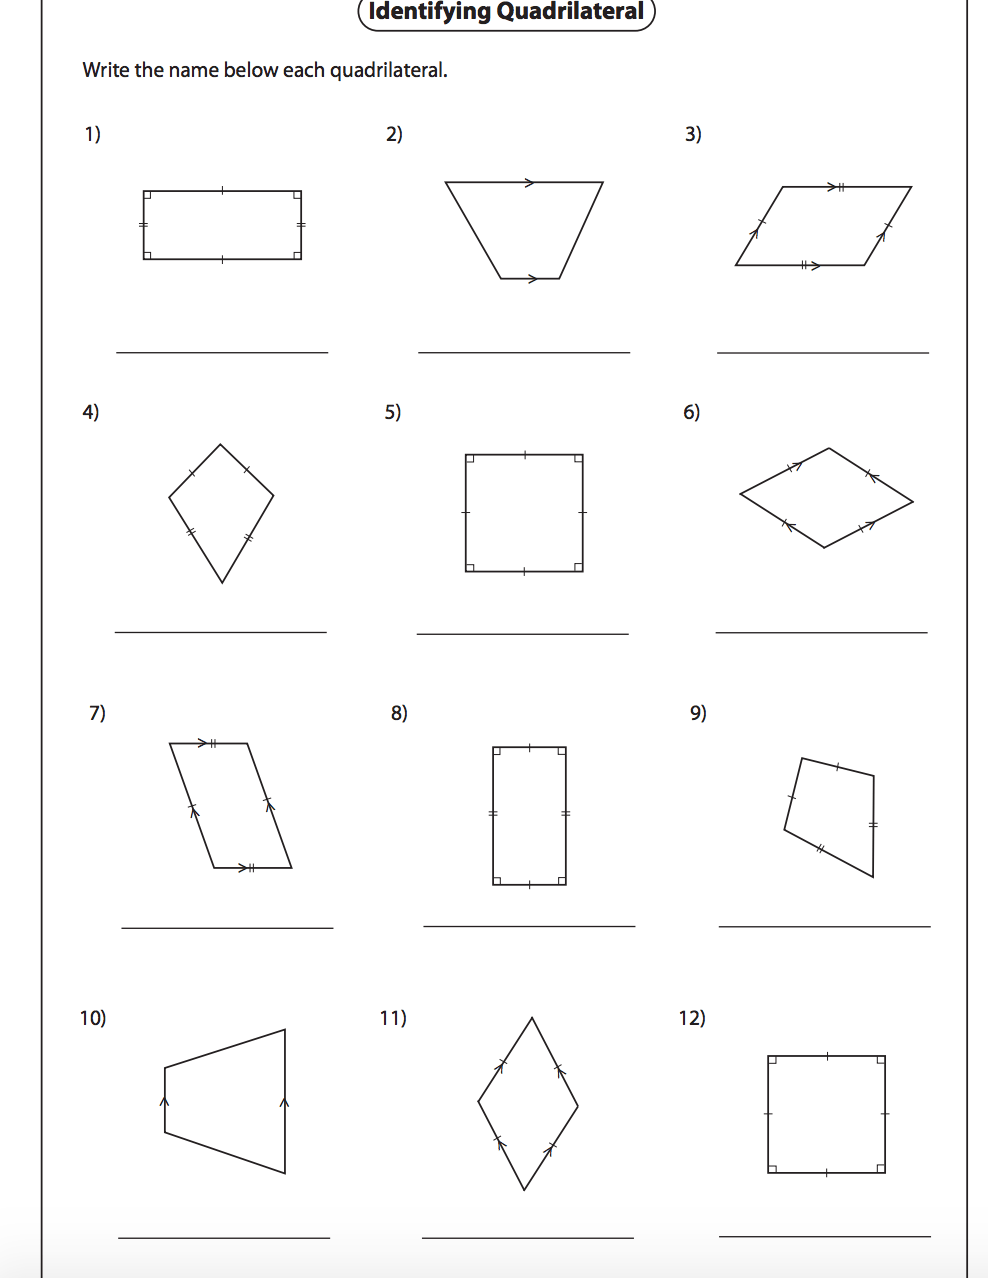 Identifying Quadrilaterals Worksheet With Answers